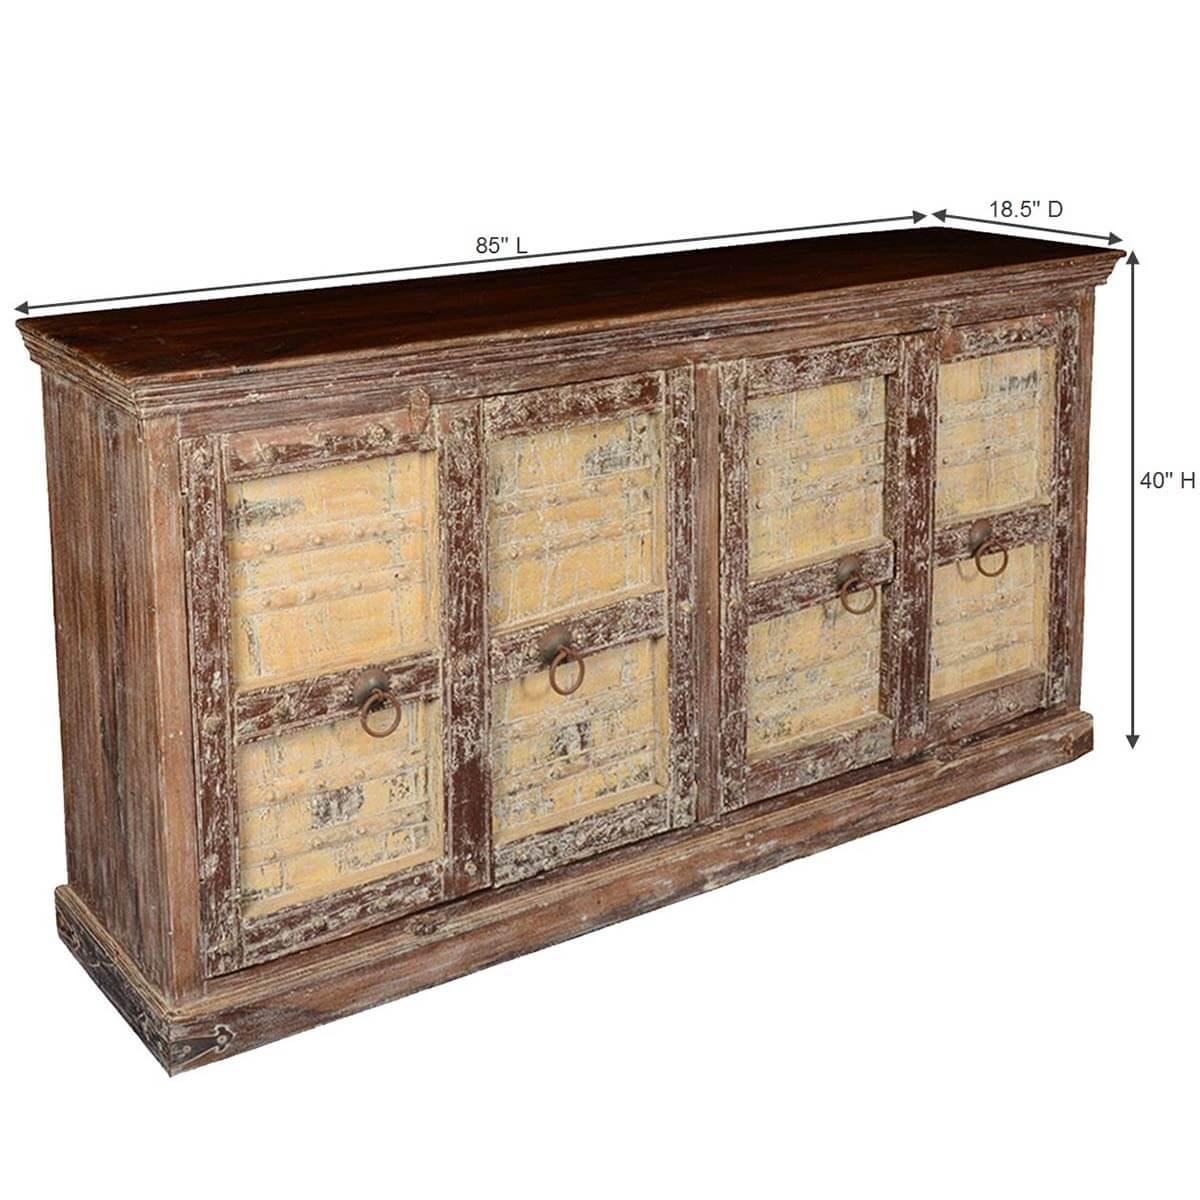 Gothic Dreams Reclaimed Wood Sideboard Cabinet : 64064 from www.sierralivingconcepts.com size 1200 x 1200 jpeg 97kB